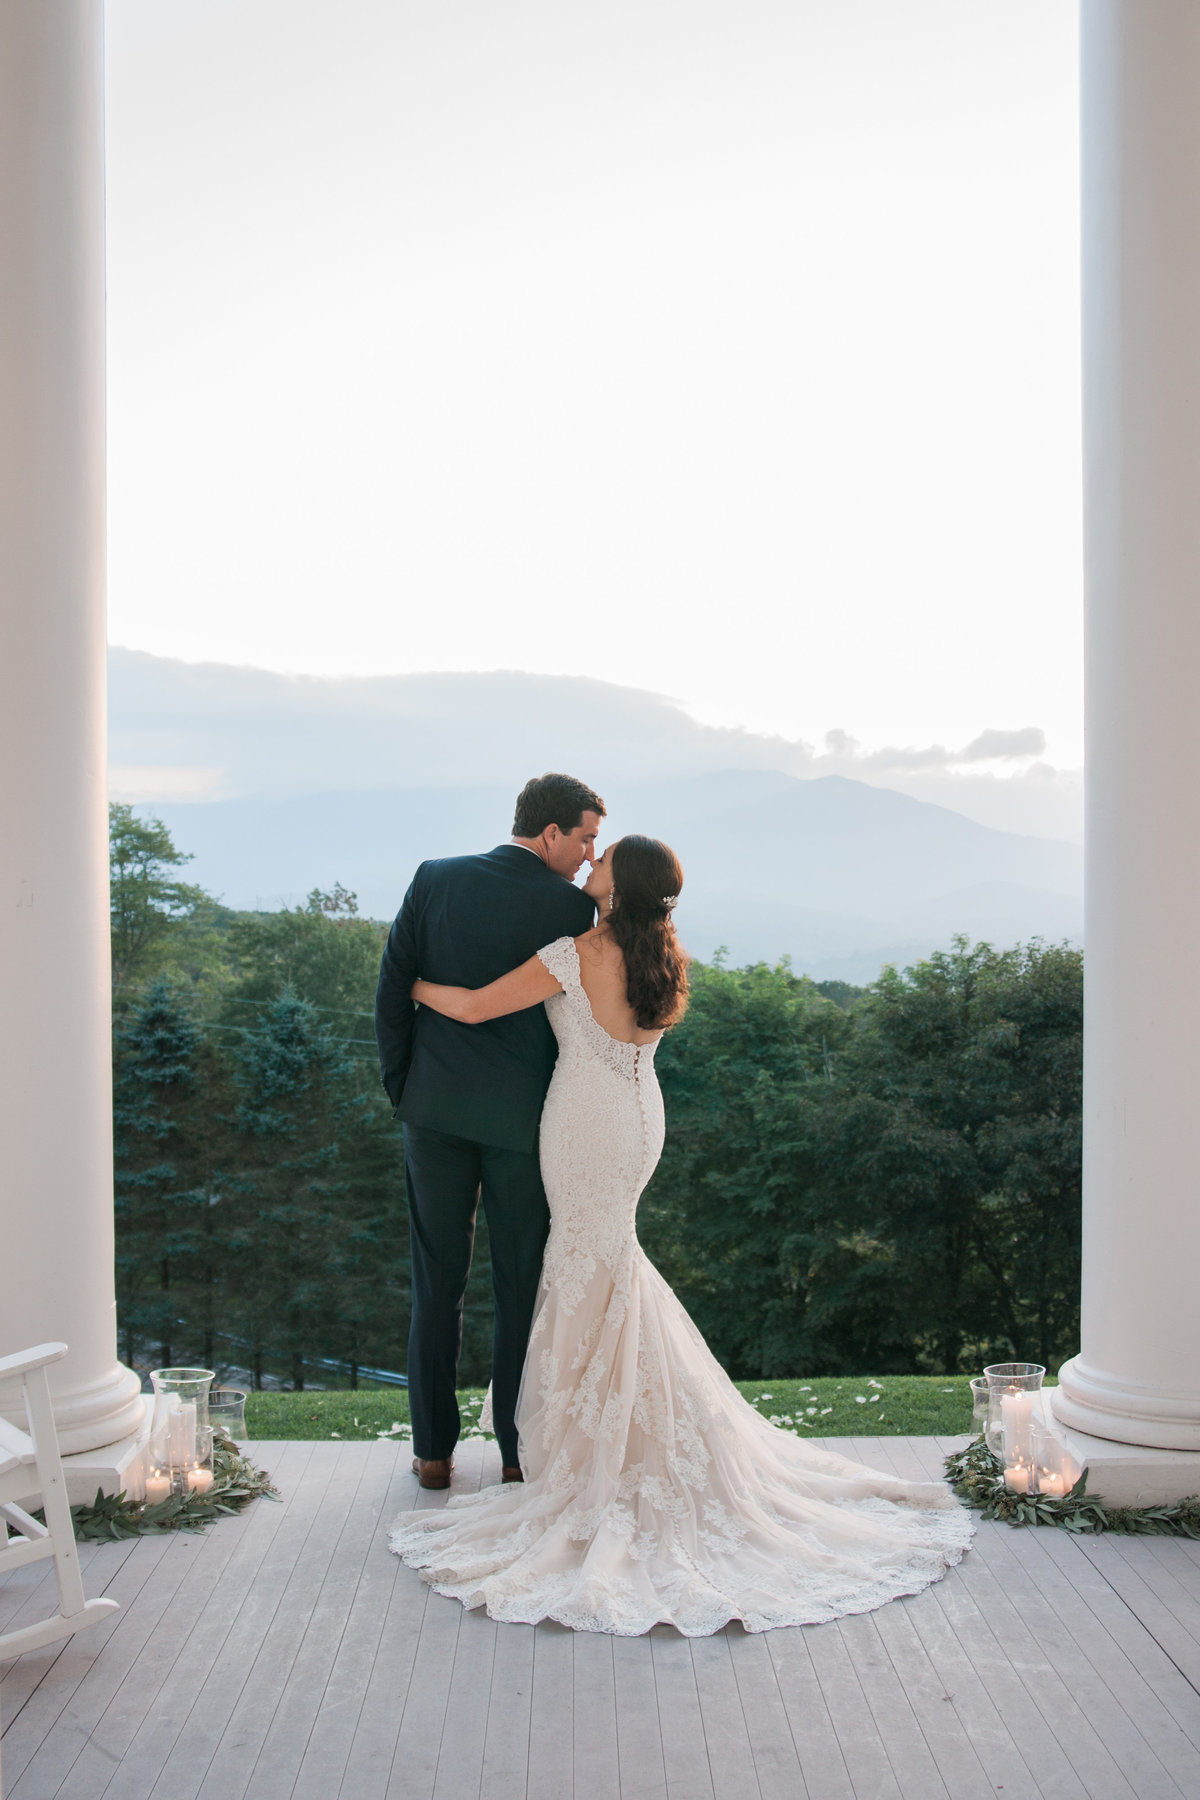 Destination wedding ceremony photographed at Westglow Resort by Boone Photographer Wayfaring Wanderer. Westglow is a gorgeous venue in Blowing Rock, NC.